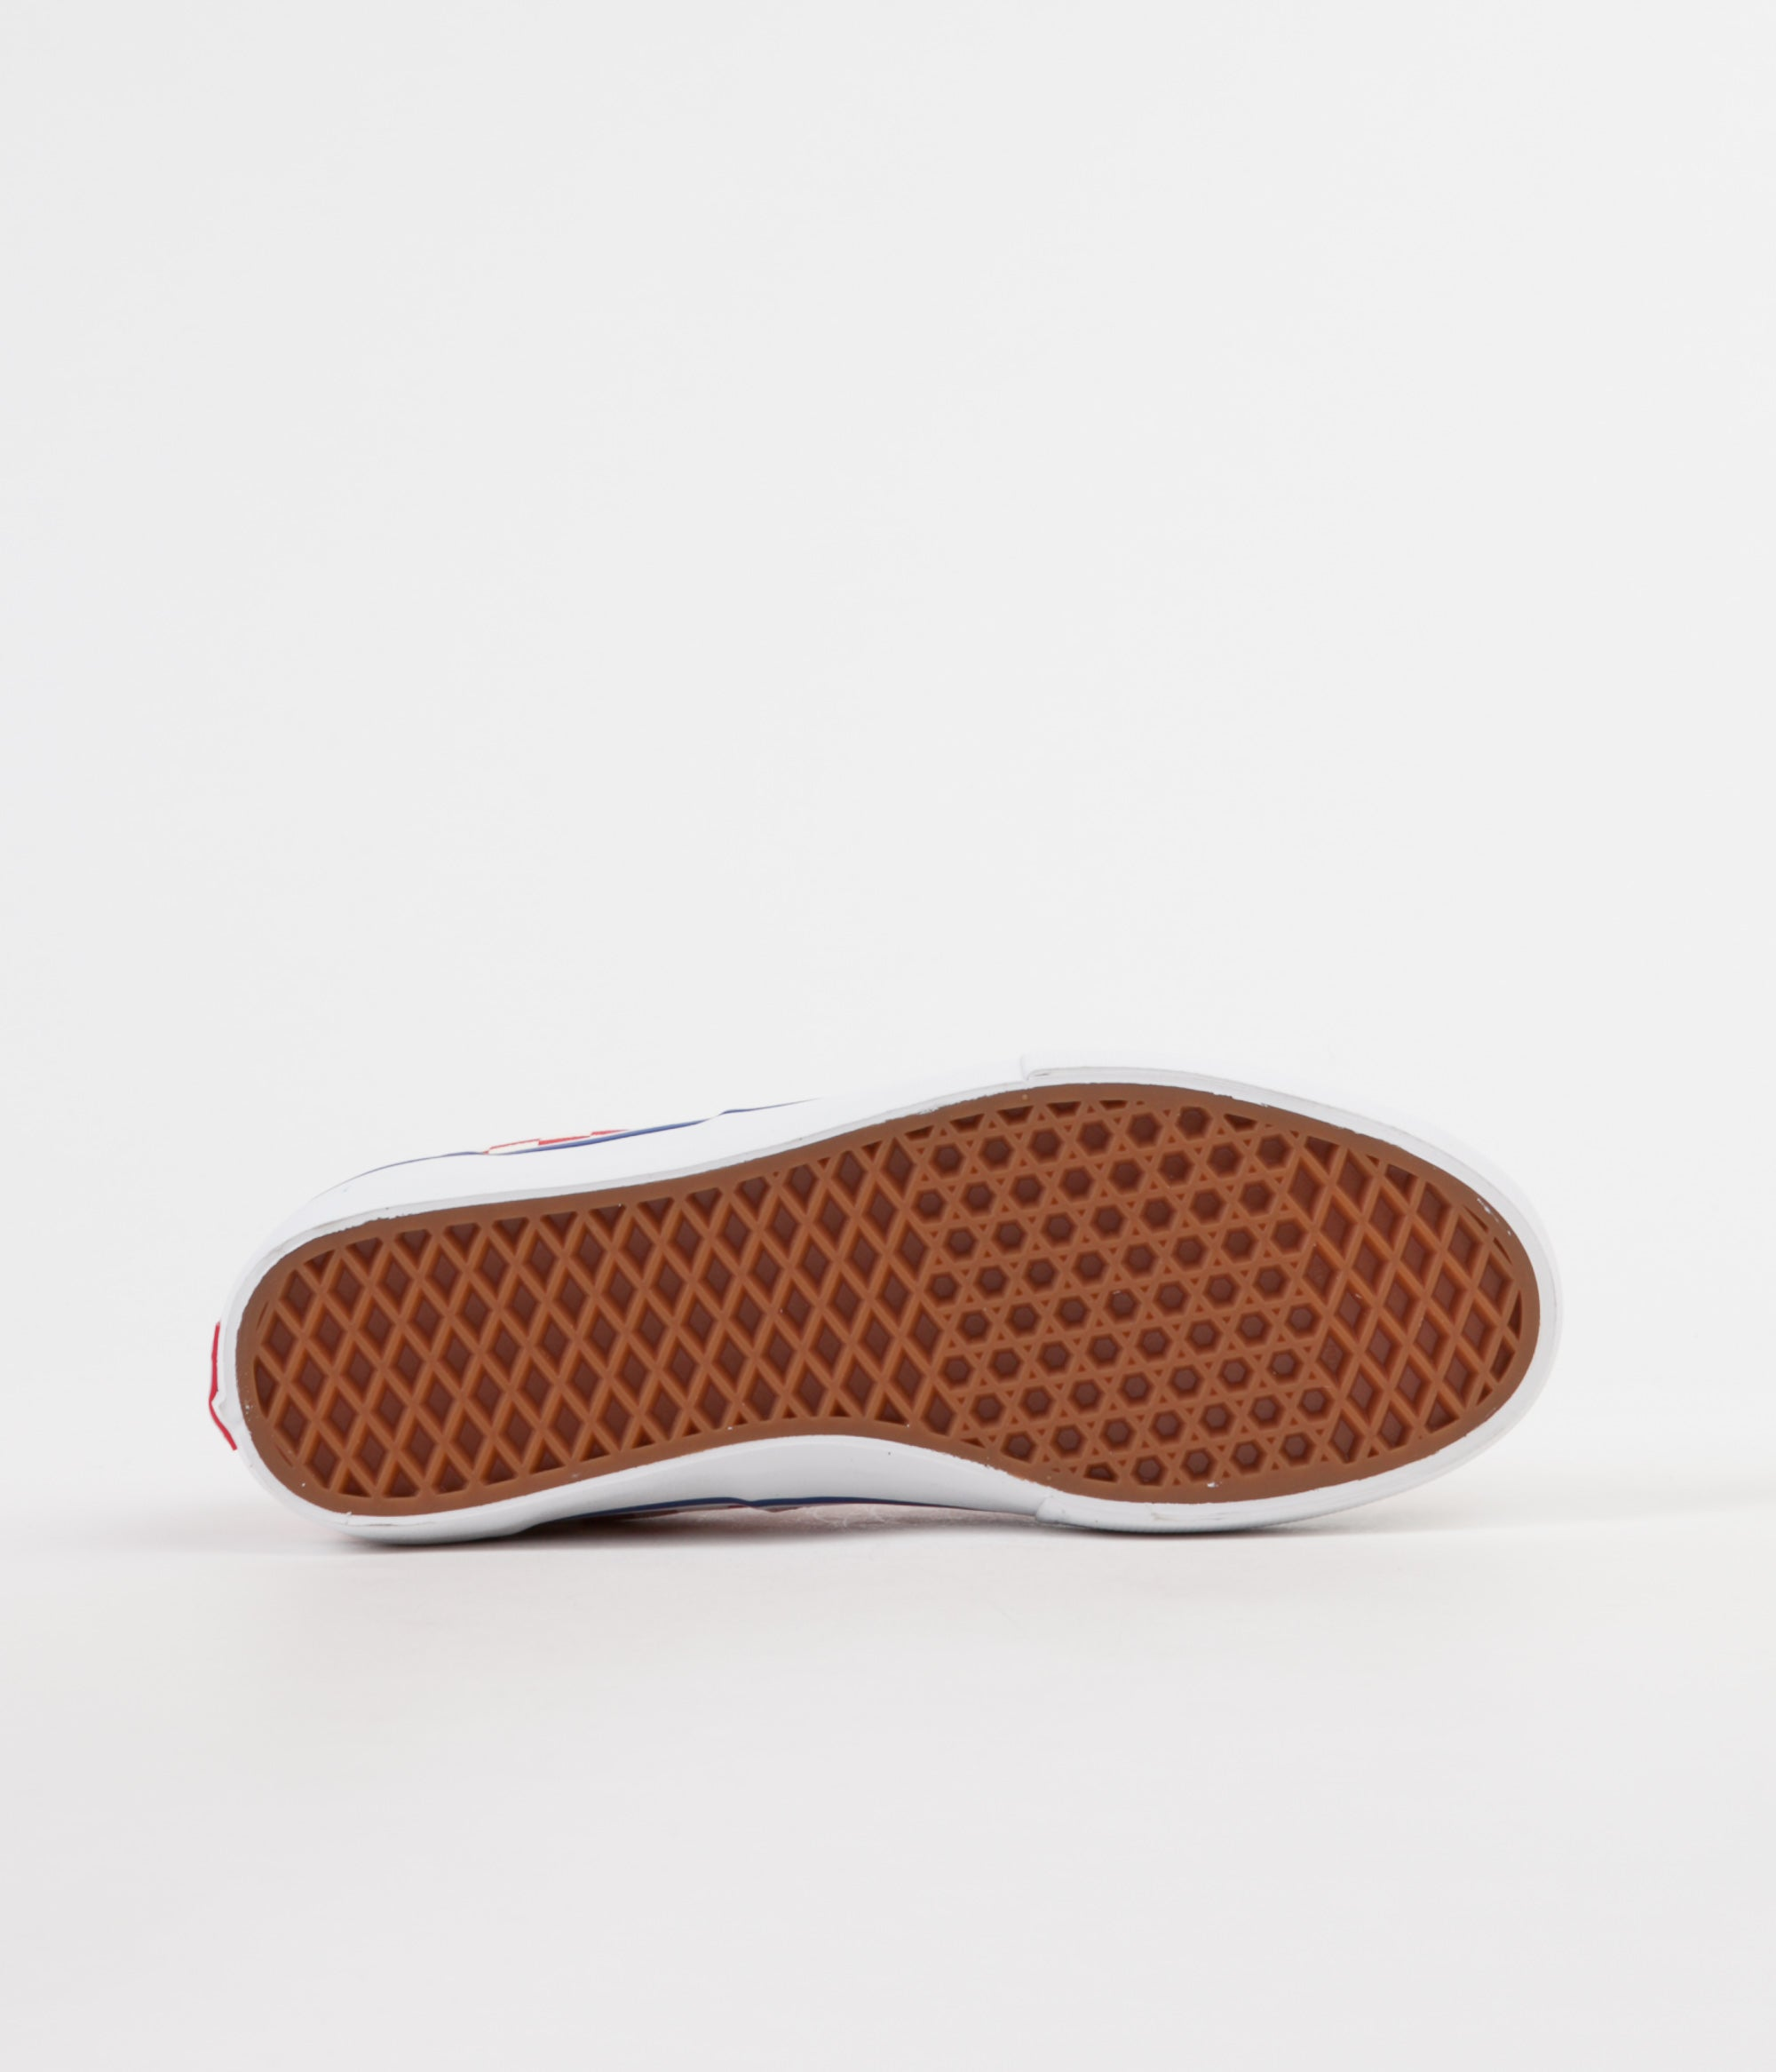 9ac4dacfd038 ... Vans Era Pro Checkerboard Shoes - Rococco Red   Classic White ...